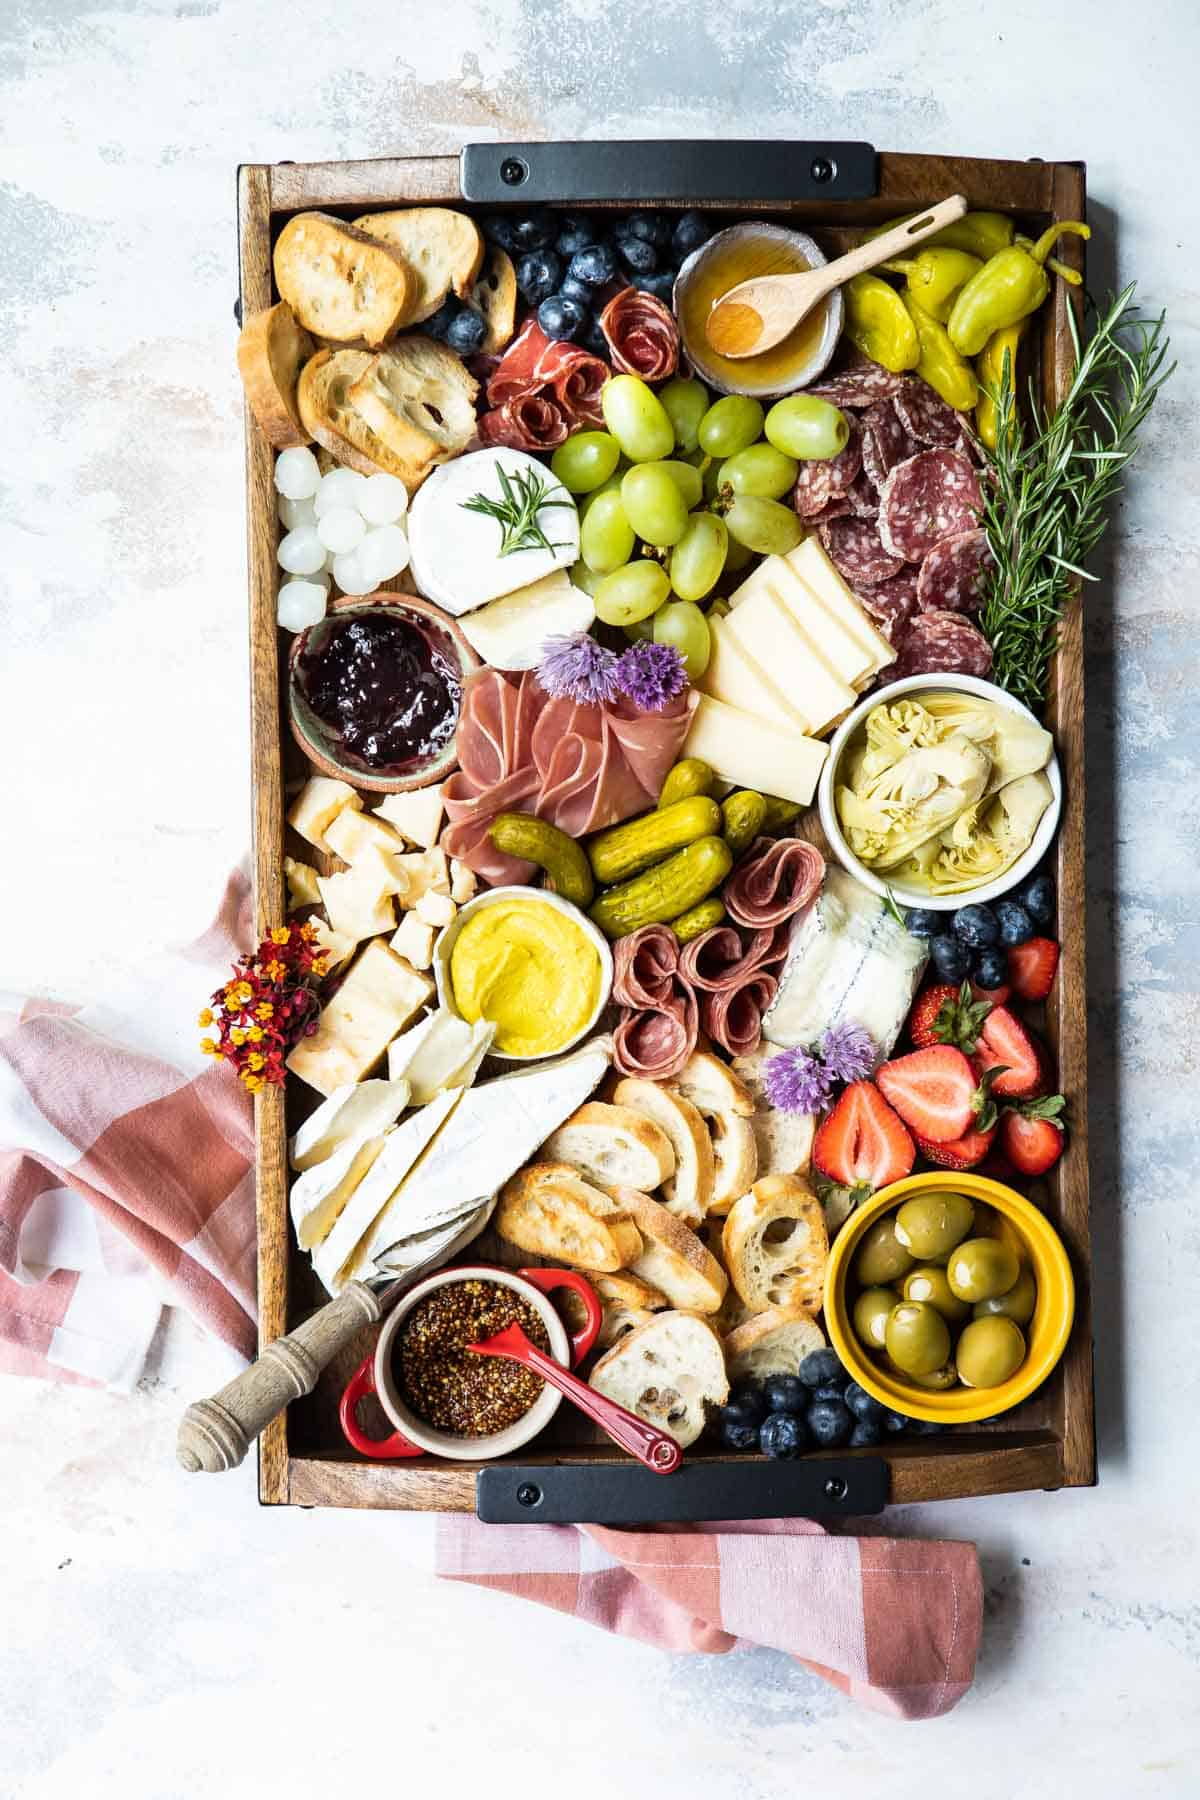 a full charcuterie platter with olives, meats, cheese and pickles